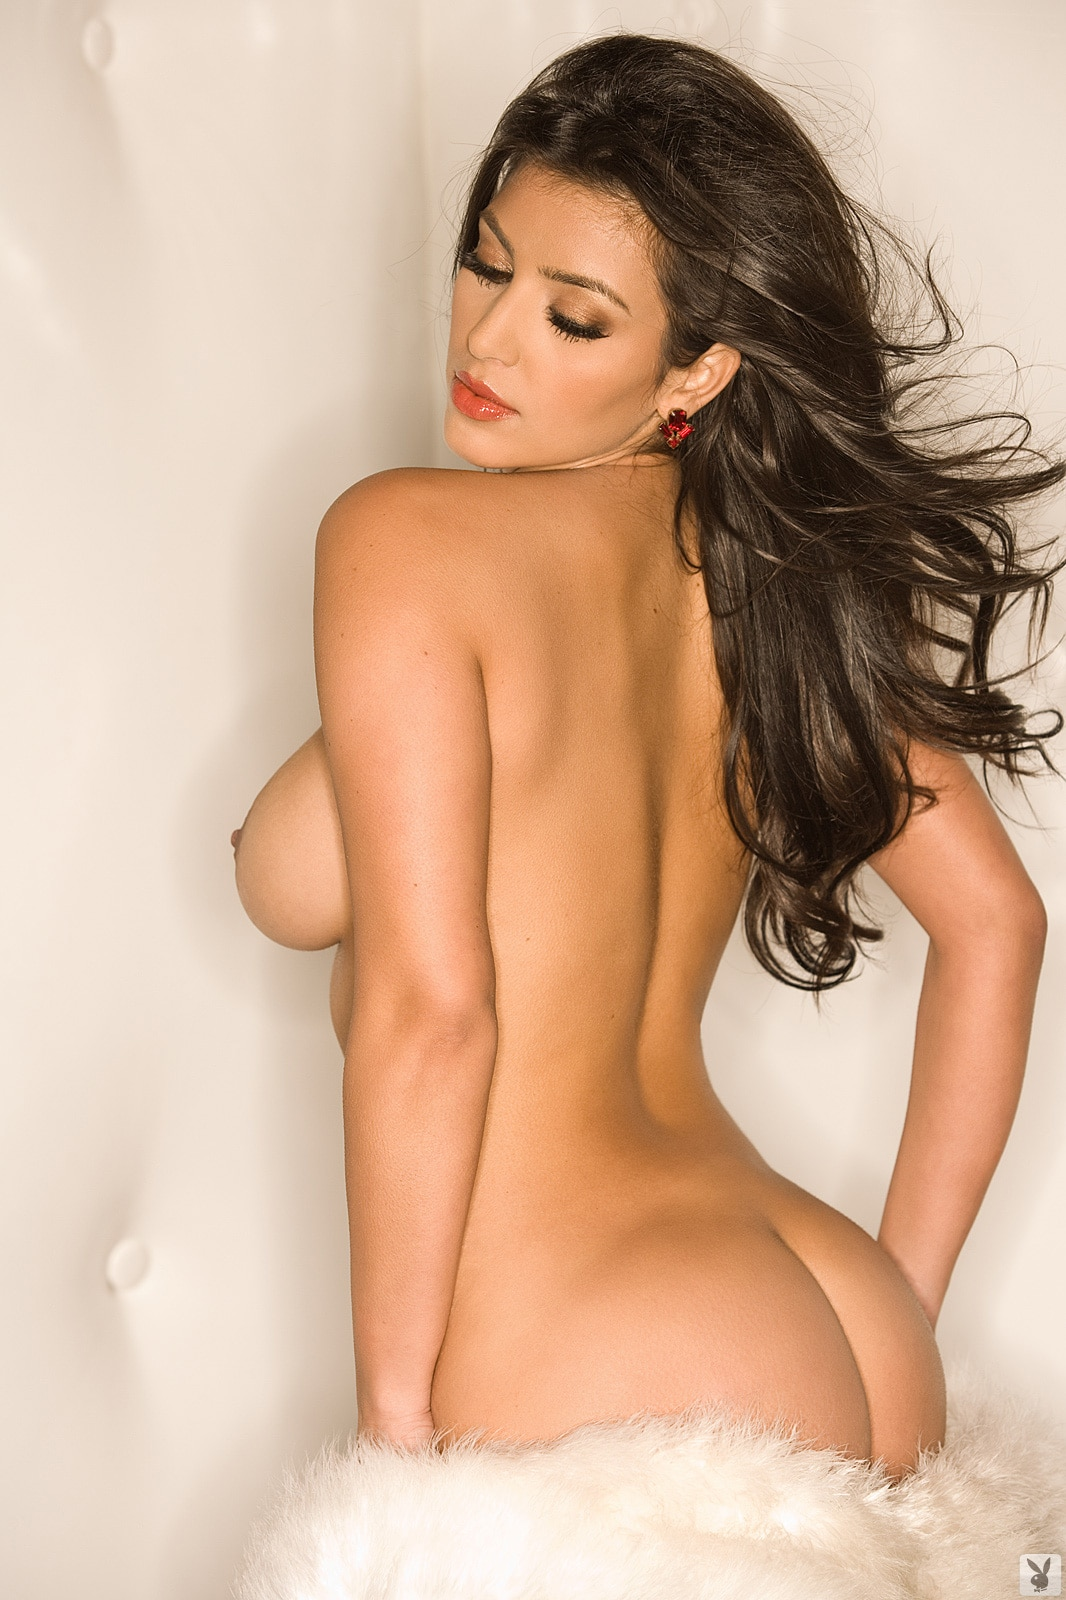 Kim Kardashian tit exposed while completely naked for playboy magazine